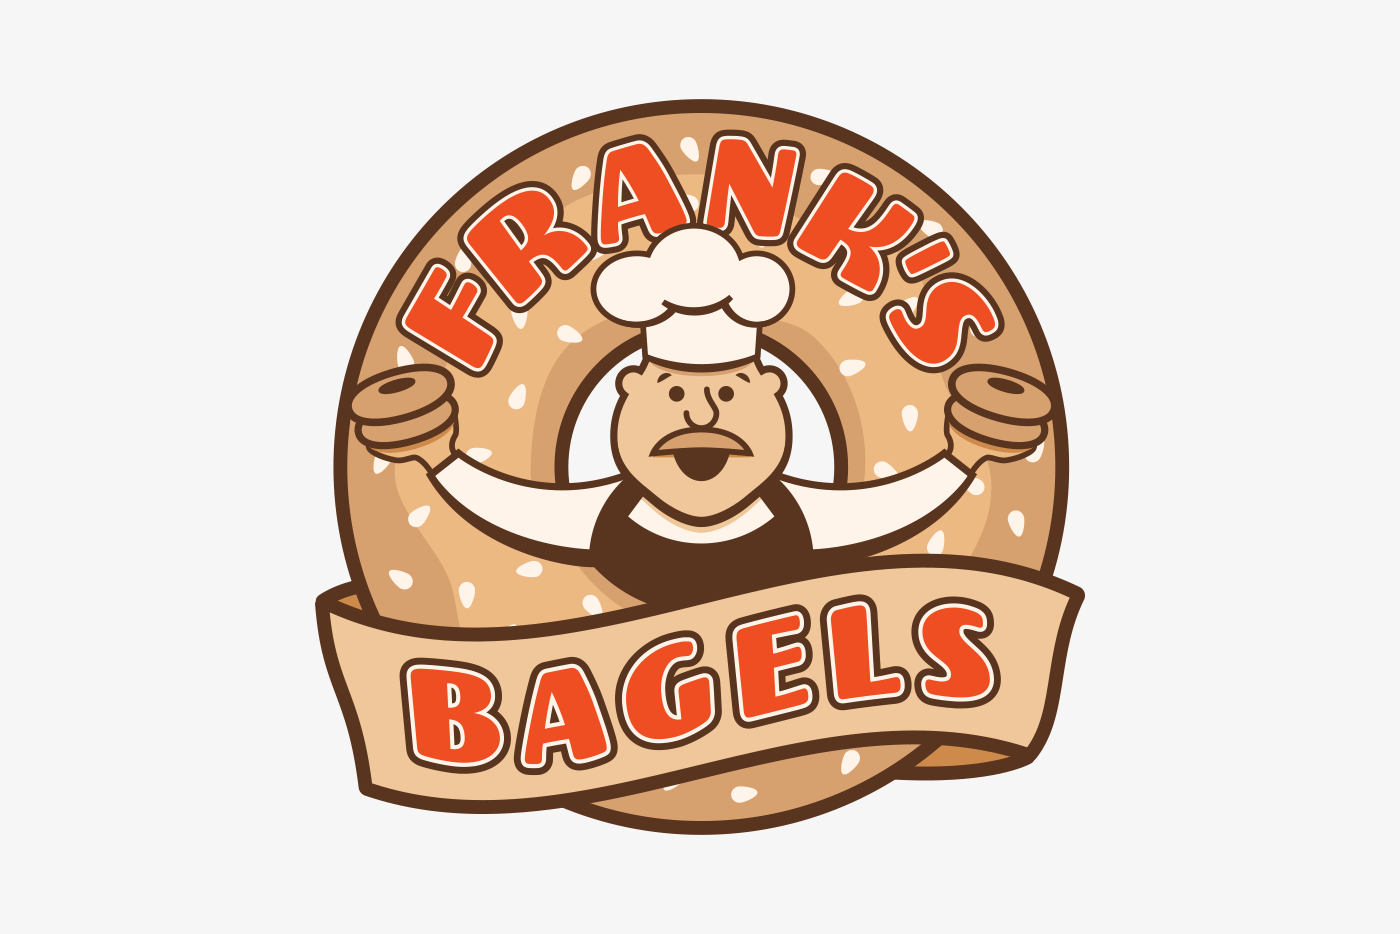 Bagel Shop Logo Grace and Frankie